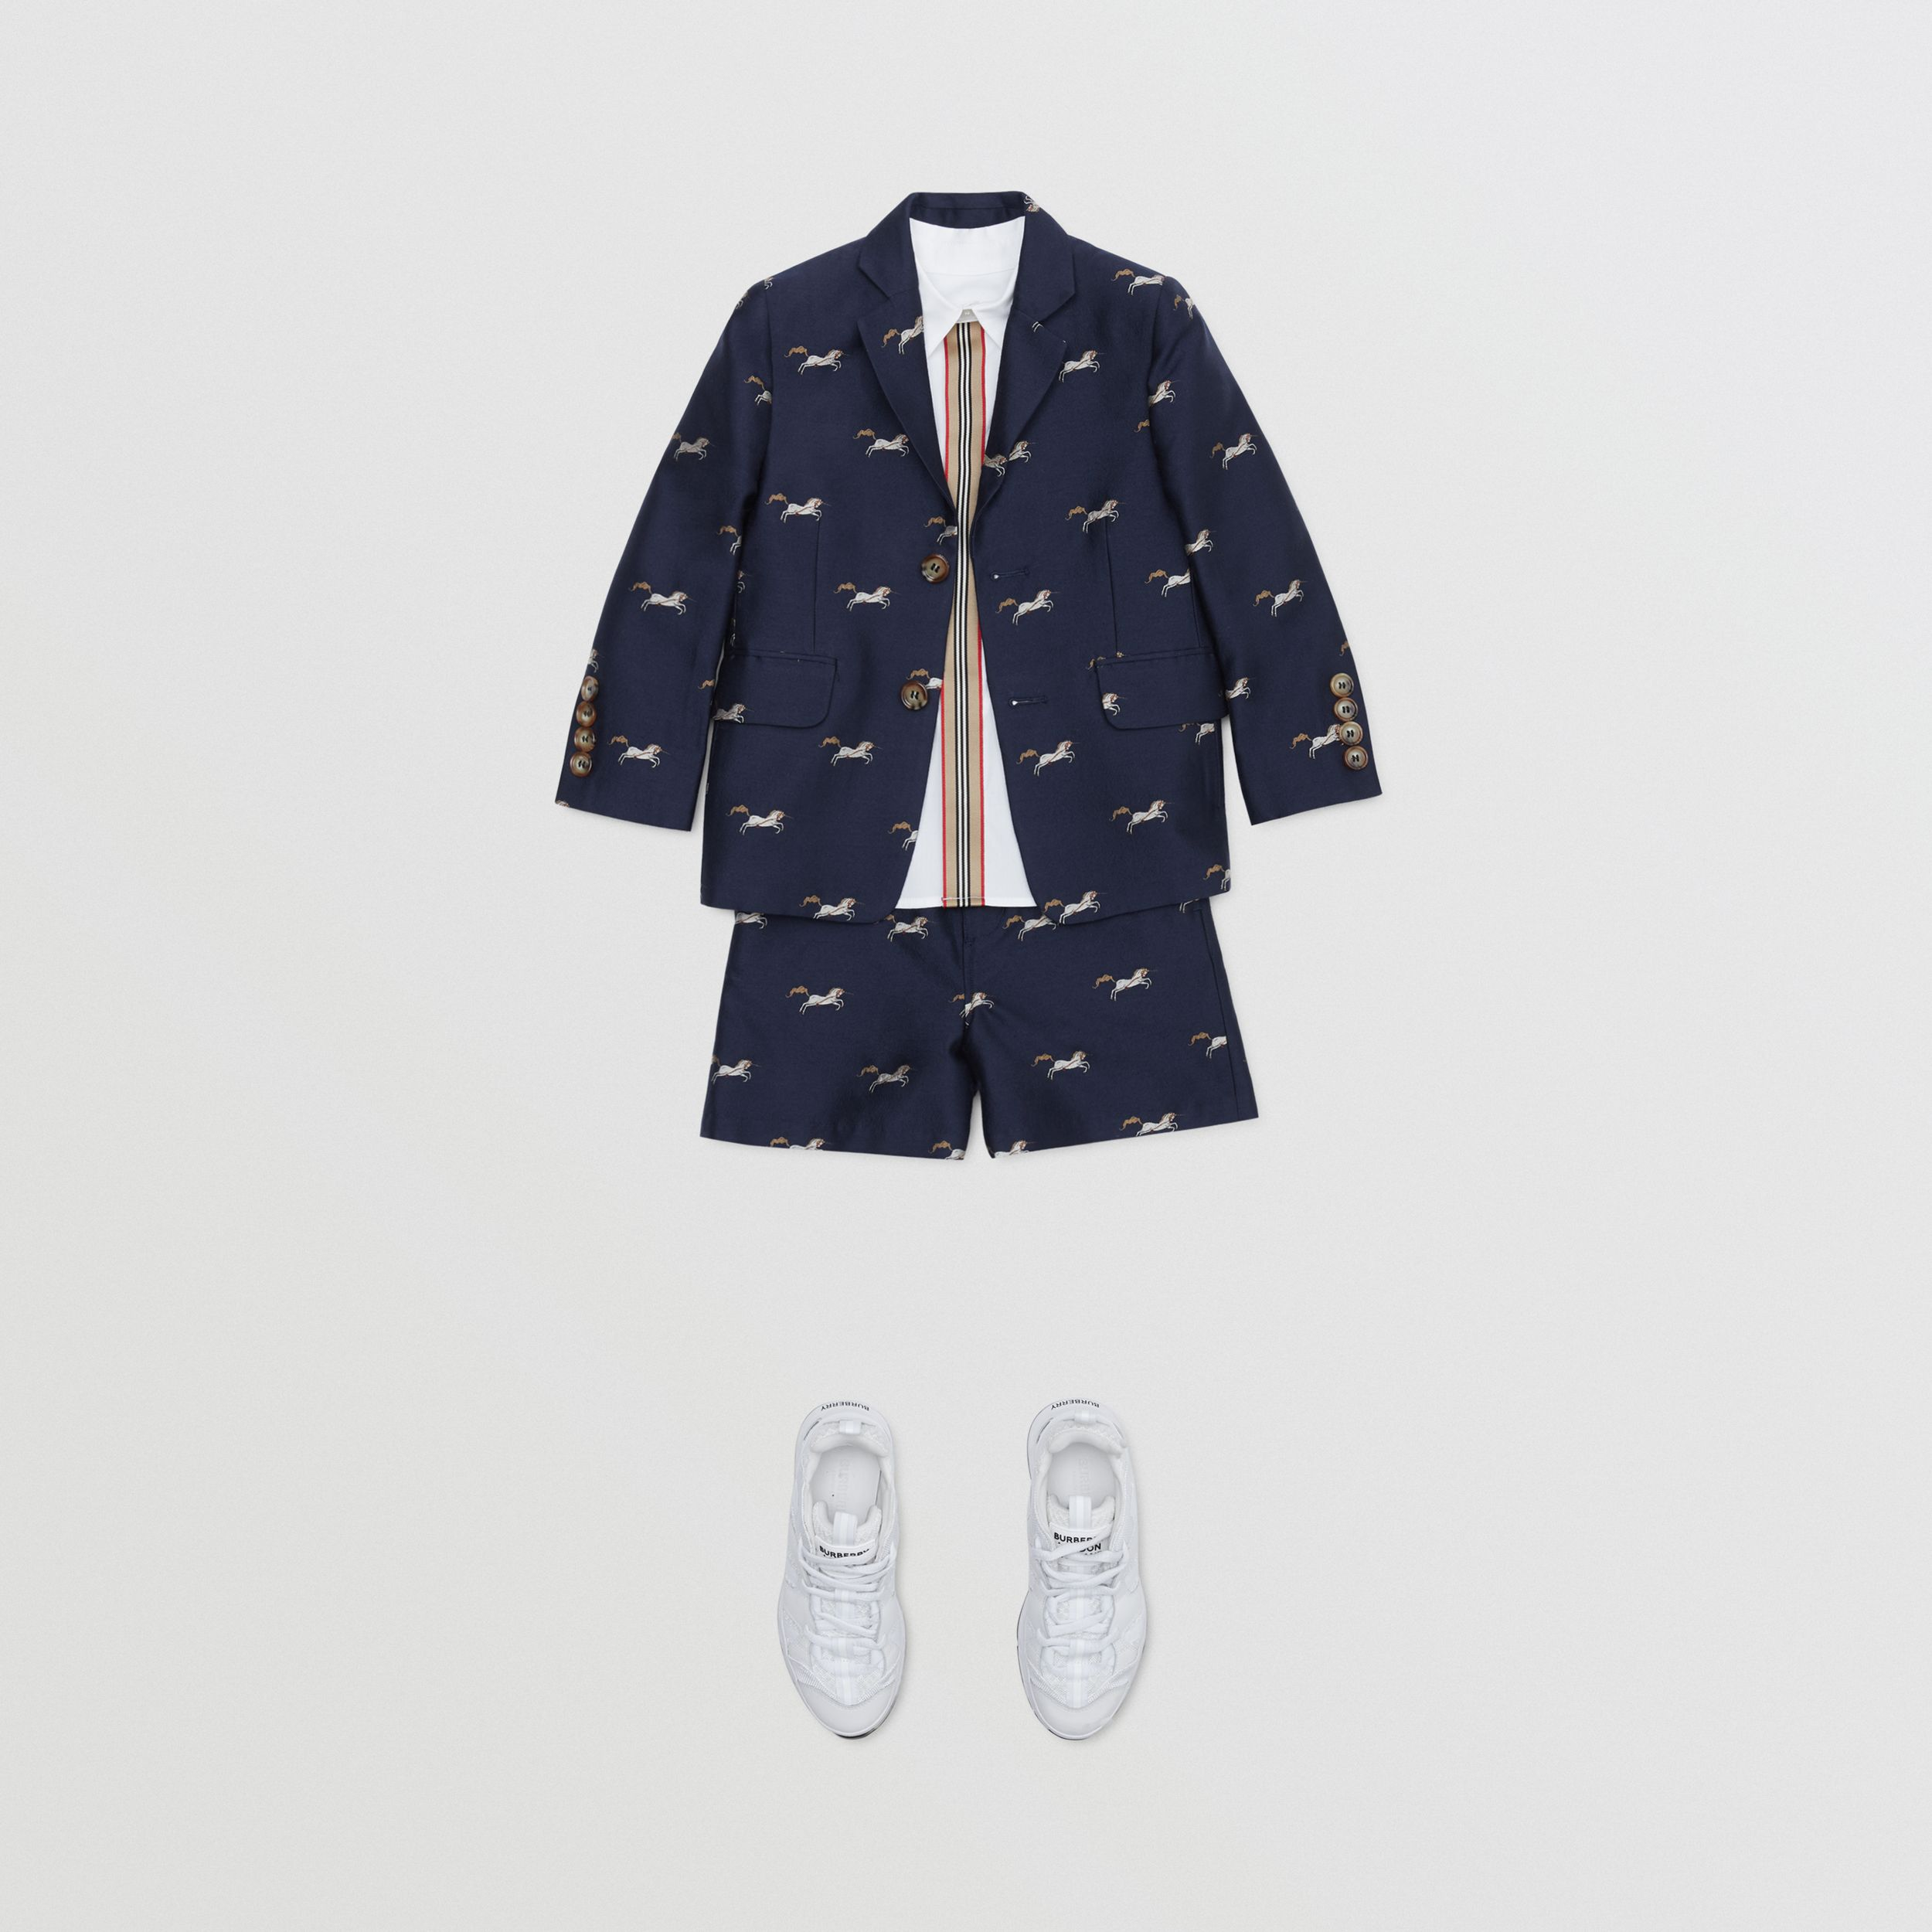 Unicorn Wool Silk Jacquard Blazer in Navy | Burberry - 3